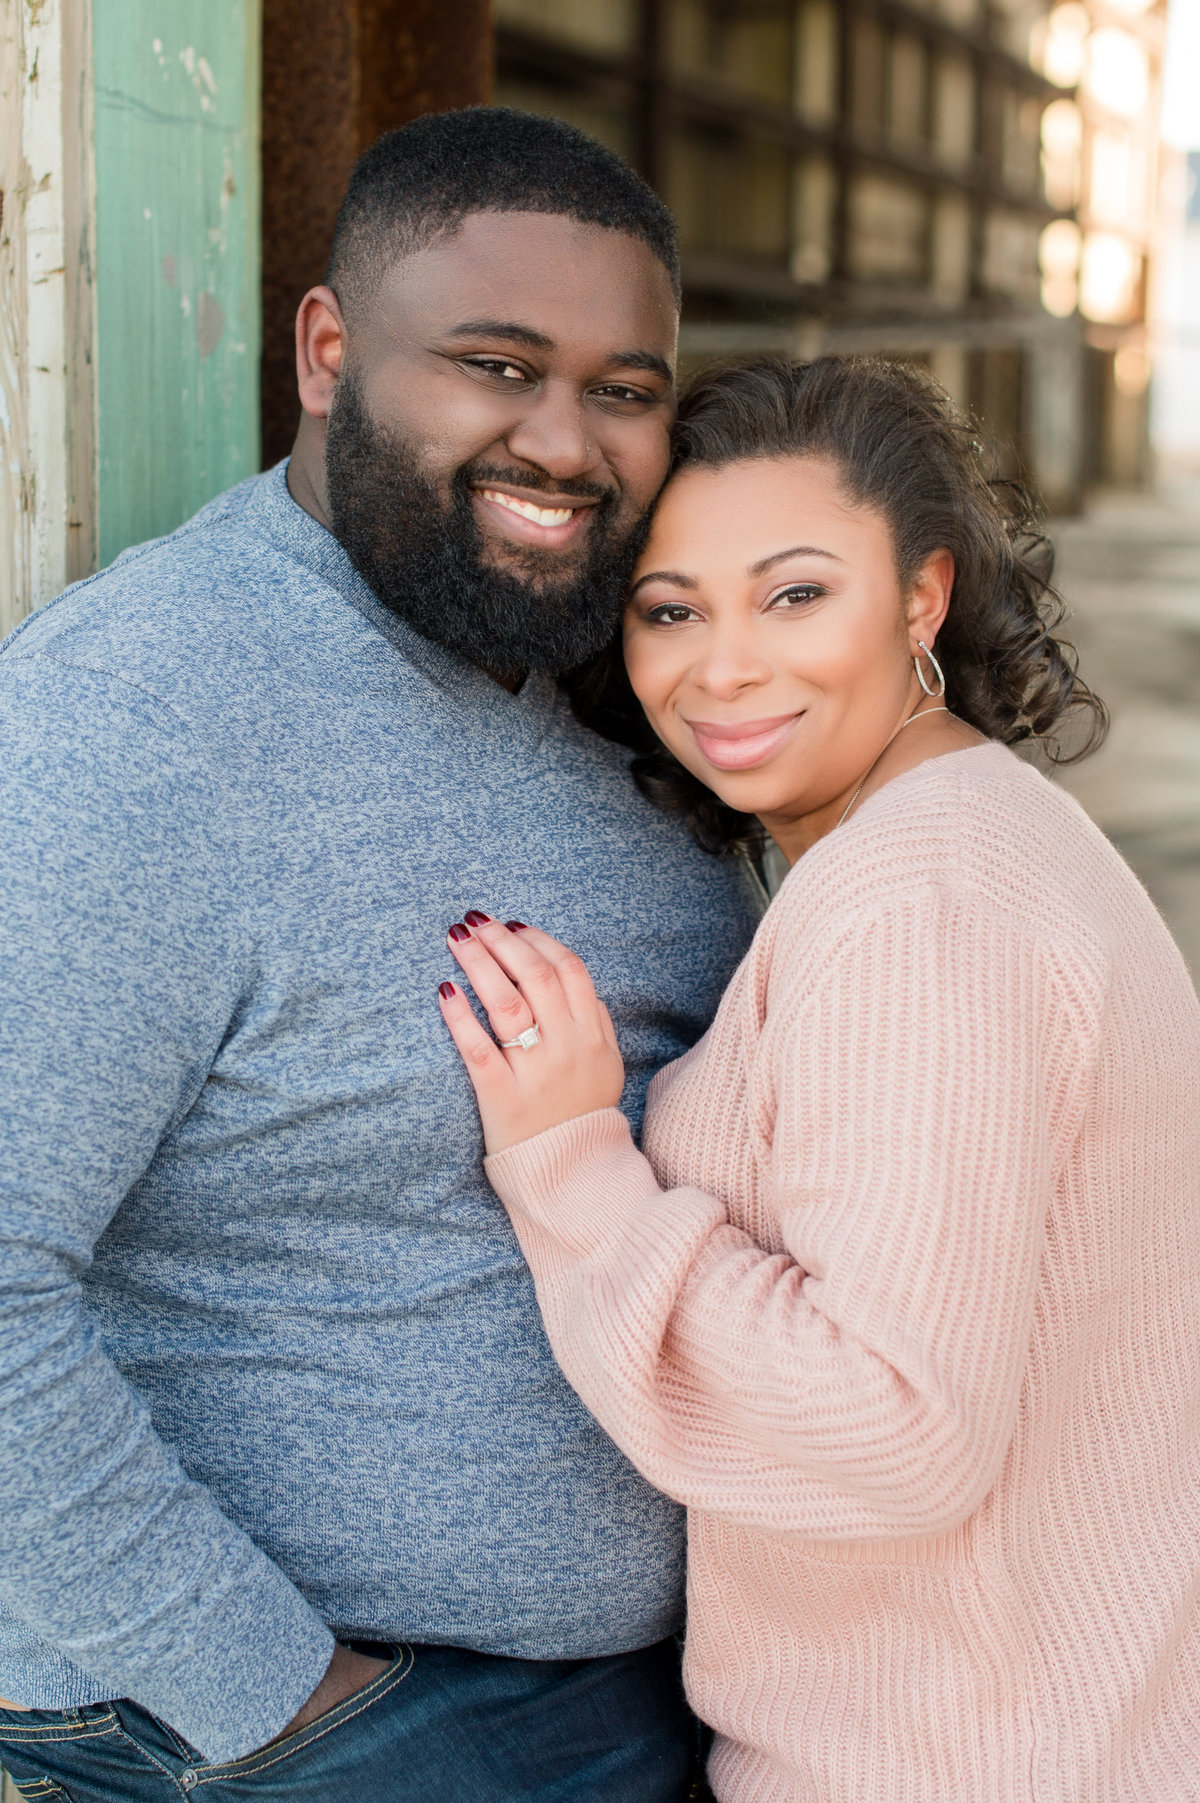 kiana-don-asbury-park-engagement-session-imagery-by-marianne-2017-26